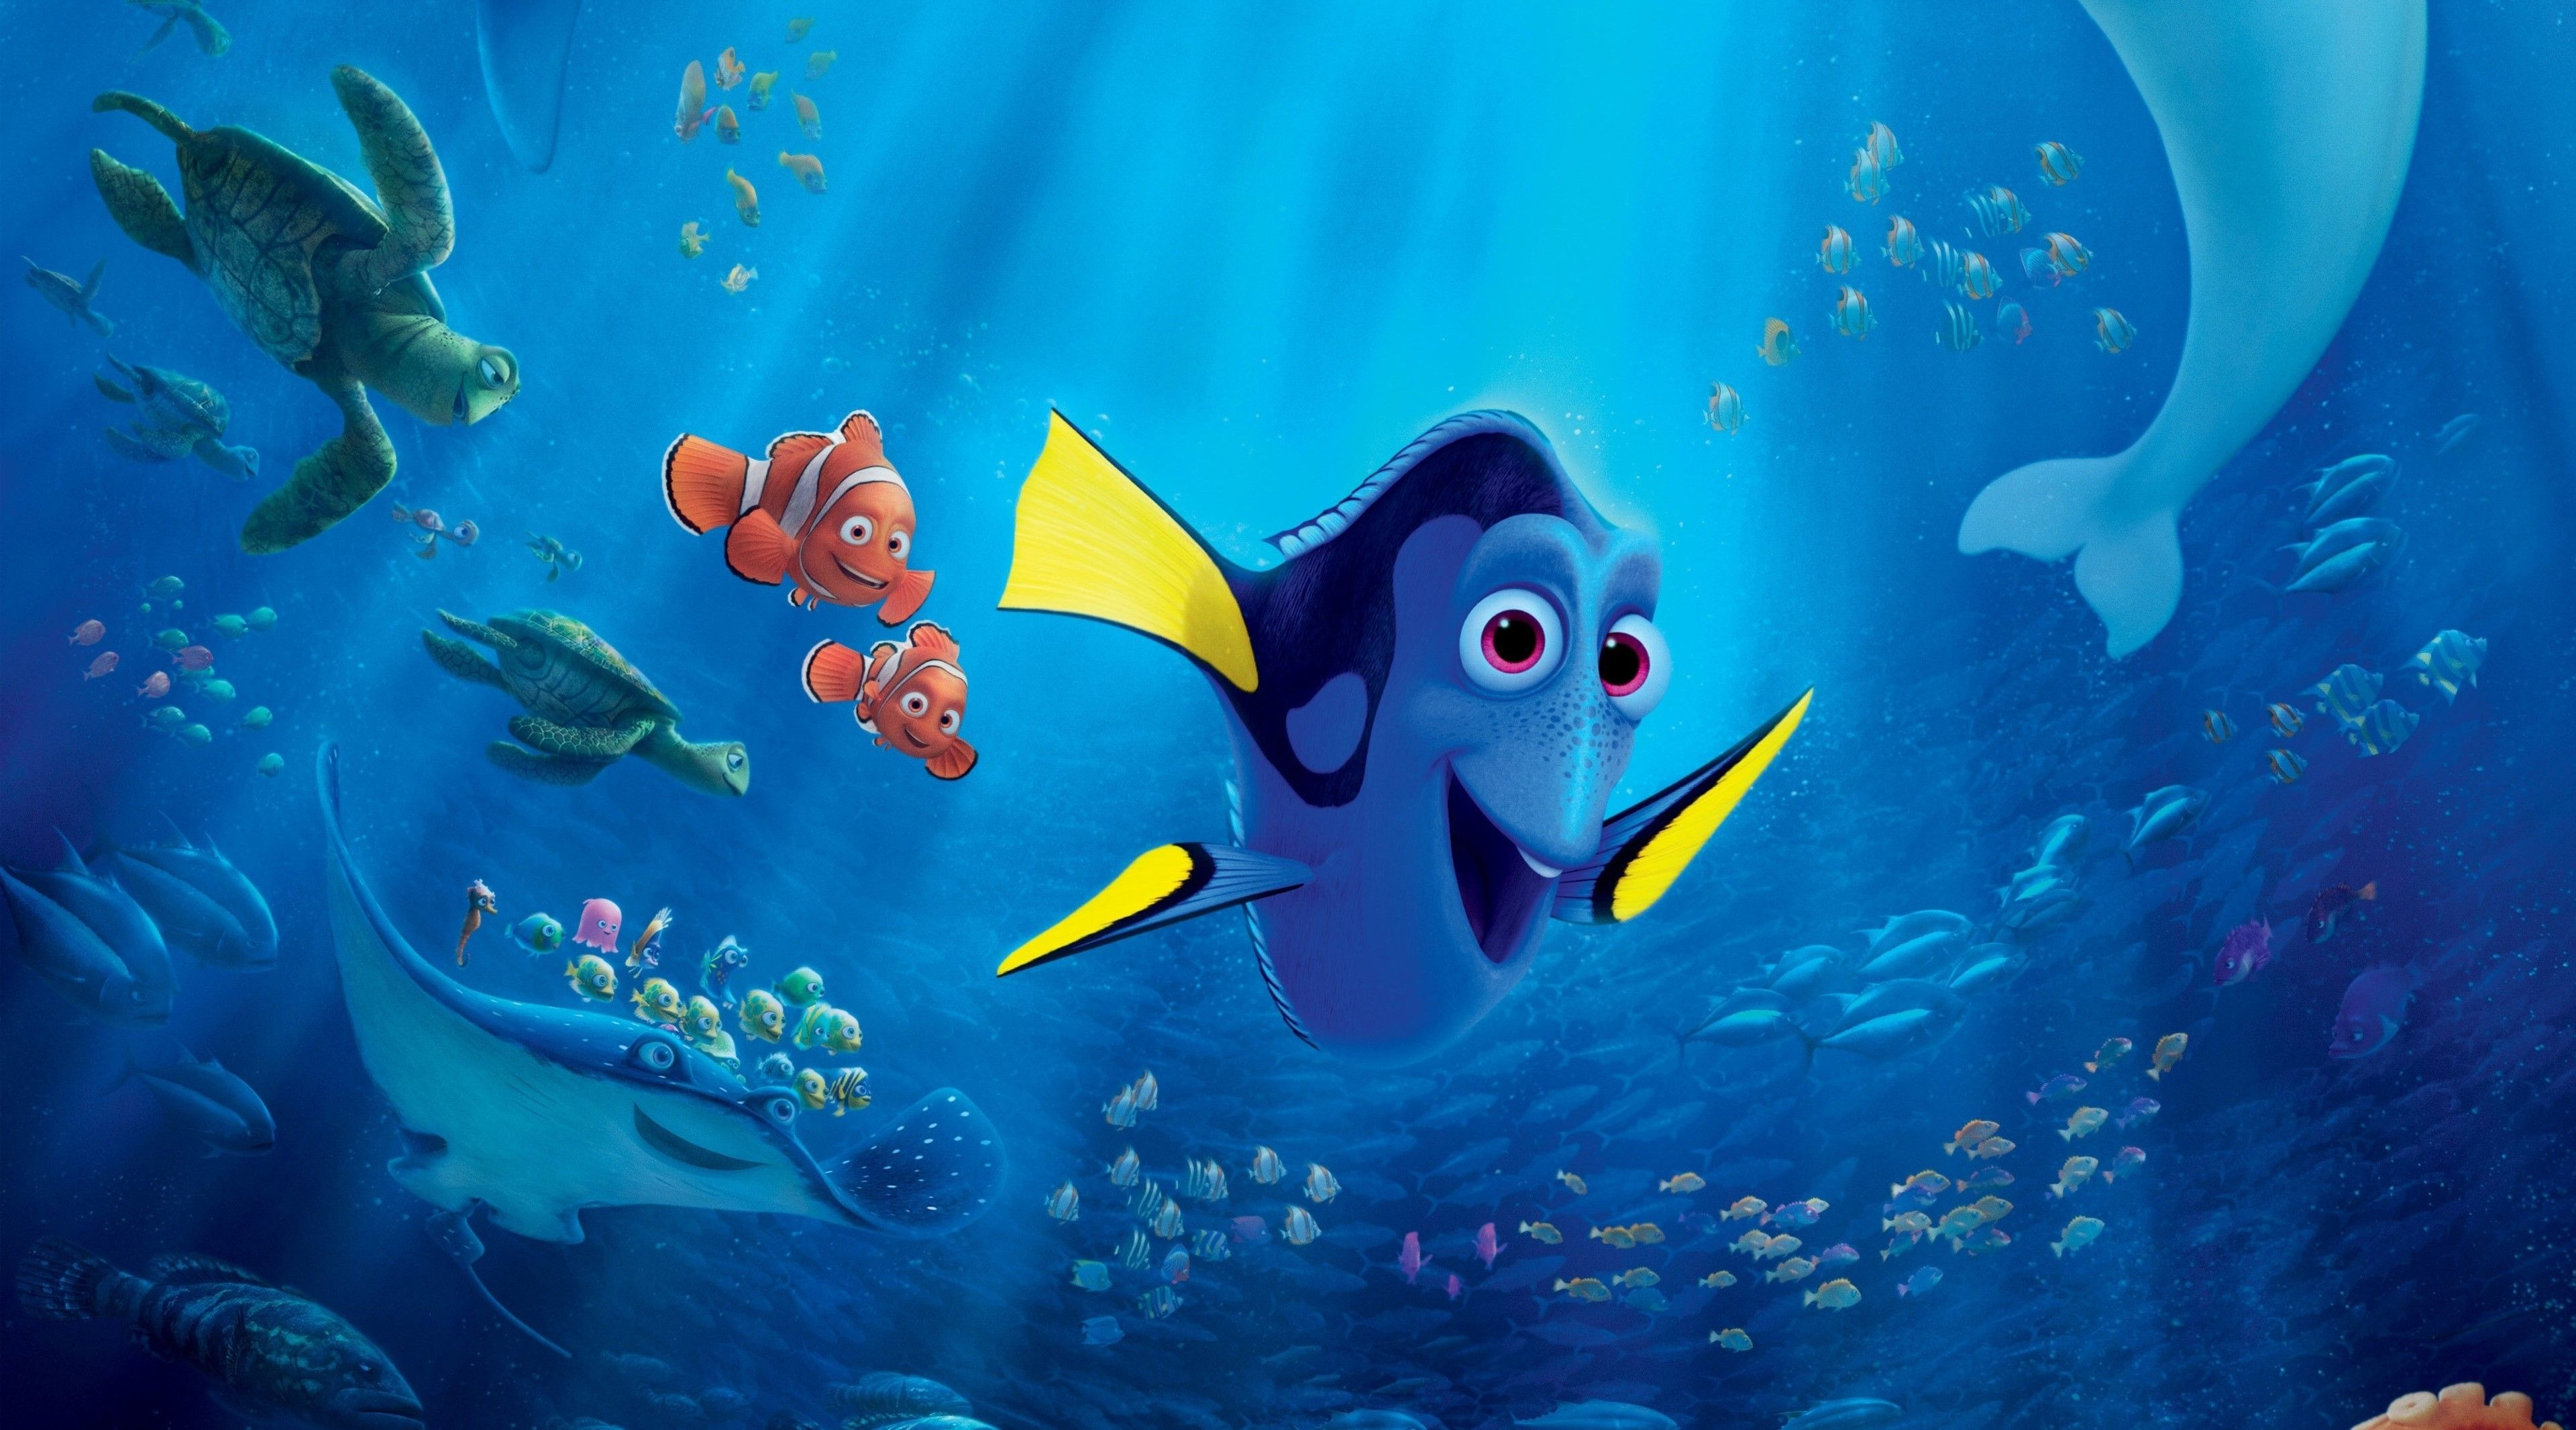 View Cute Finding Nemo Wallpapers PNG